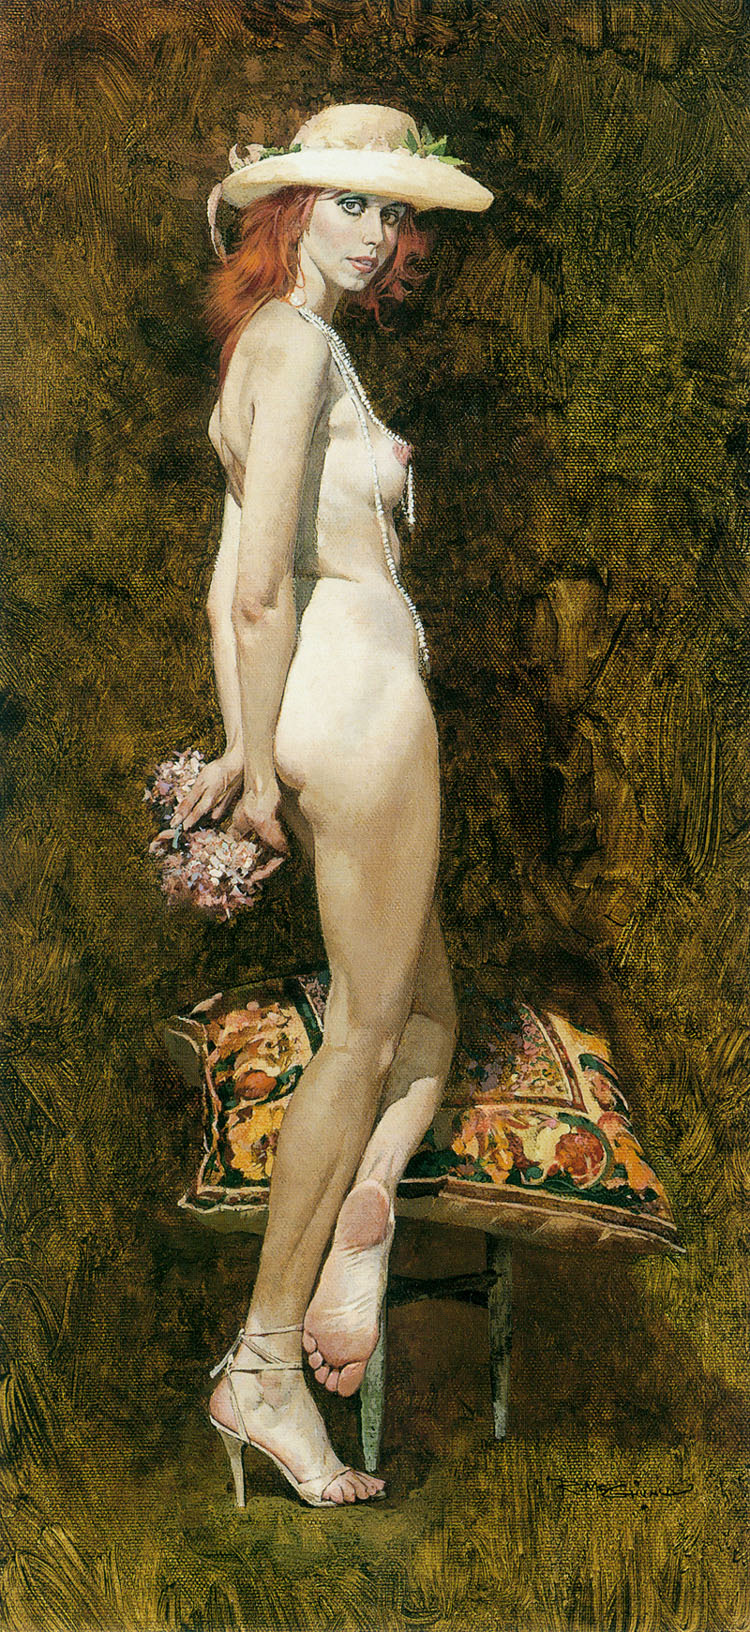 Robert McGinnis. Girl with a bouquet